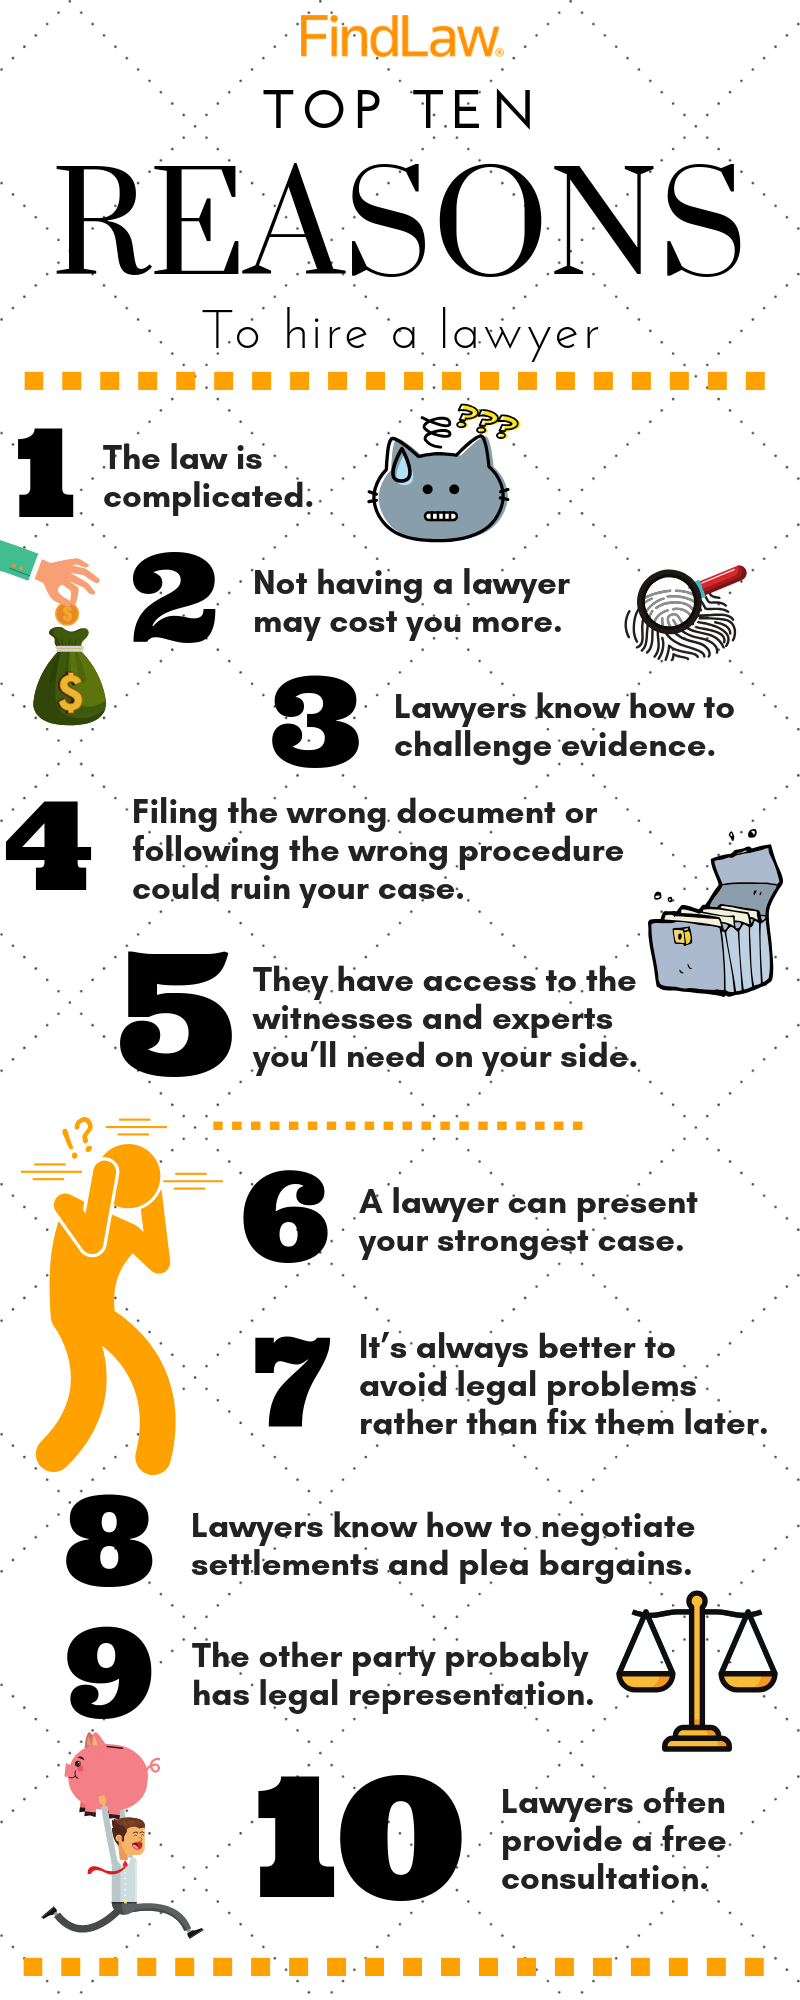 Top Ten Reasons to Hire a Lawyer